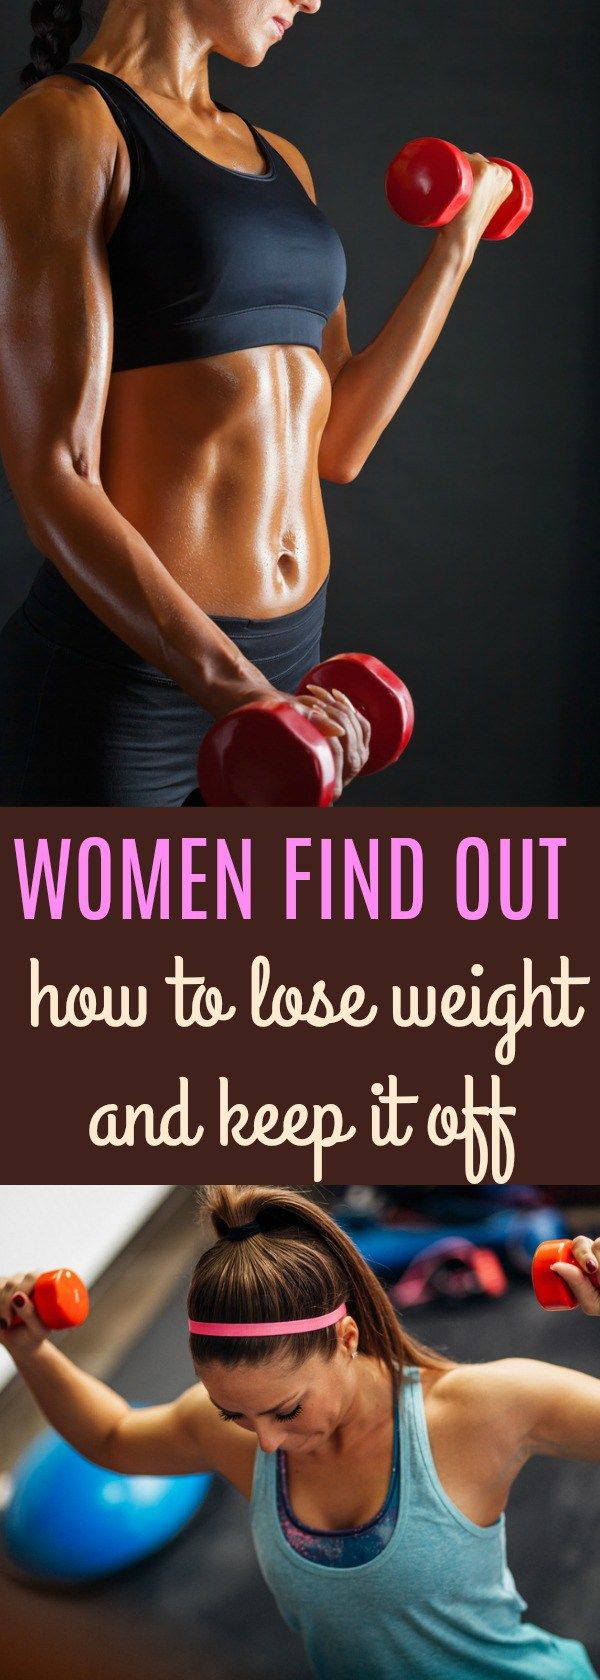 Are you trying to lose weight and keep it off? Do you find your weight loss efforts going waste? Then you have to start weight training. Add weight training to your fitness routine. Find out how it is important for women to lift weights? #weighttraining #strengthtraining #fitness #workout